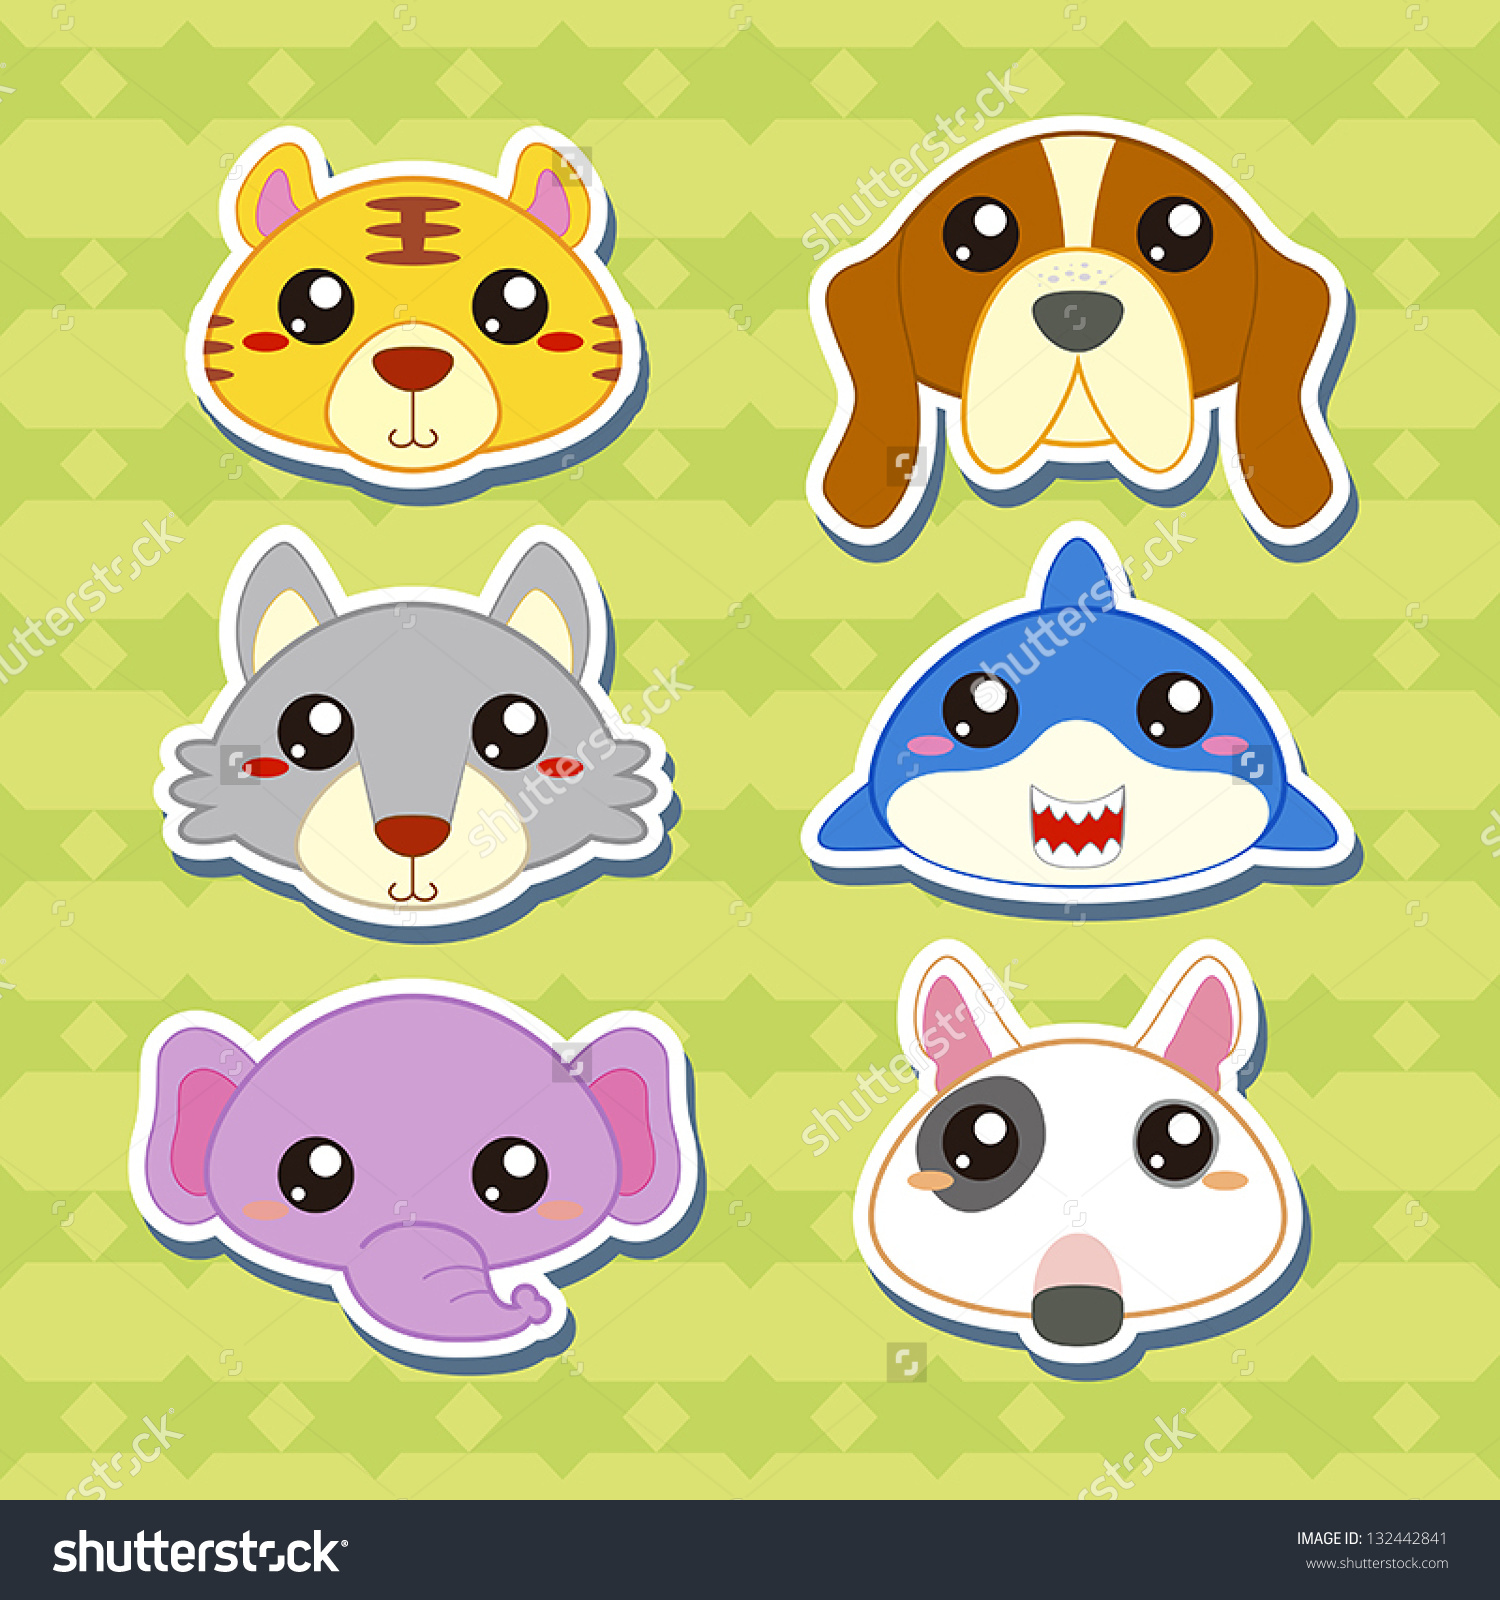 cartoon animal stickers in - photo #39